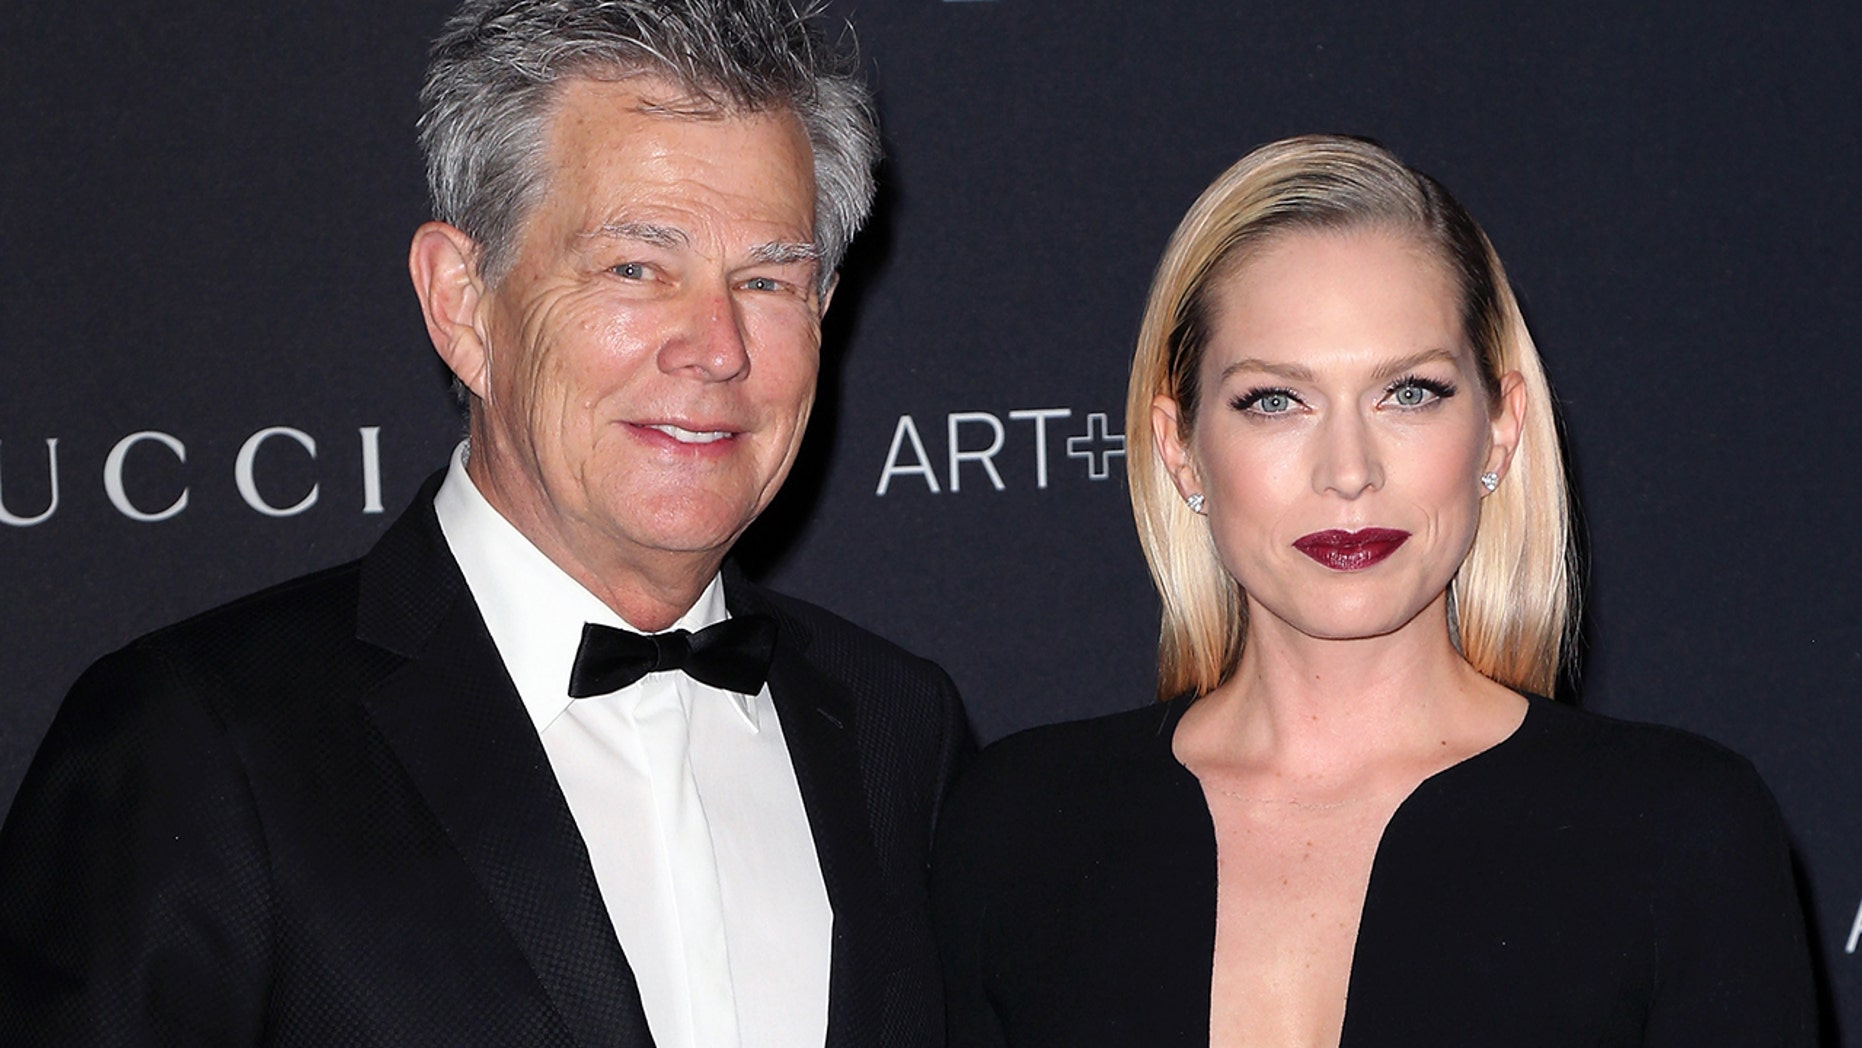 FILE 2015: Composer David Foster (L) and Erin Foster attend the LACMA Art + Film Gala honoring Alejandro G. Iñárritu and James Turrell and presented by Gucci in Los Angeles. (Photo by David Livingston/Getty Images)